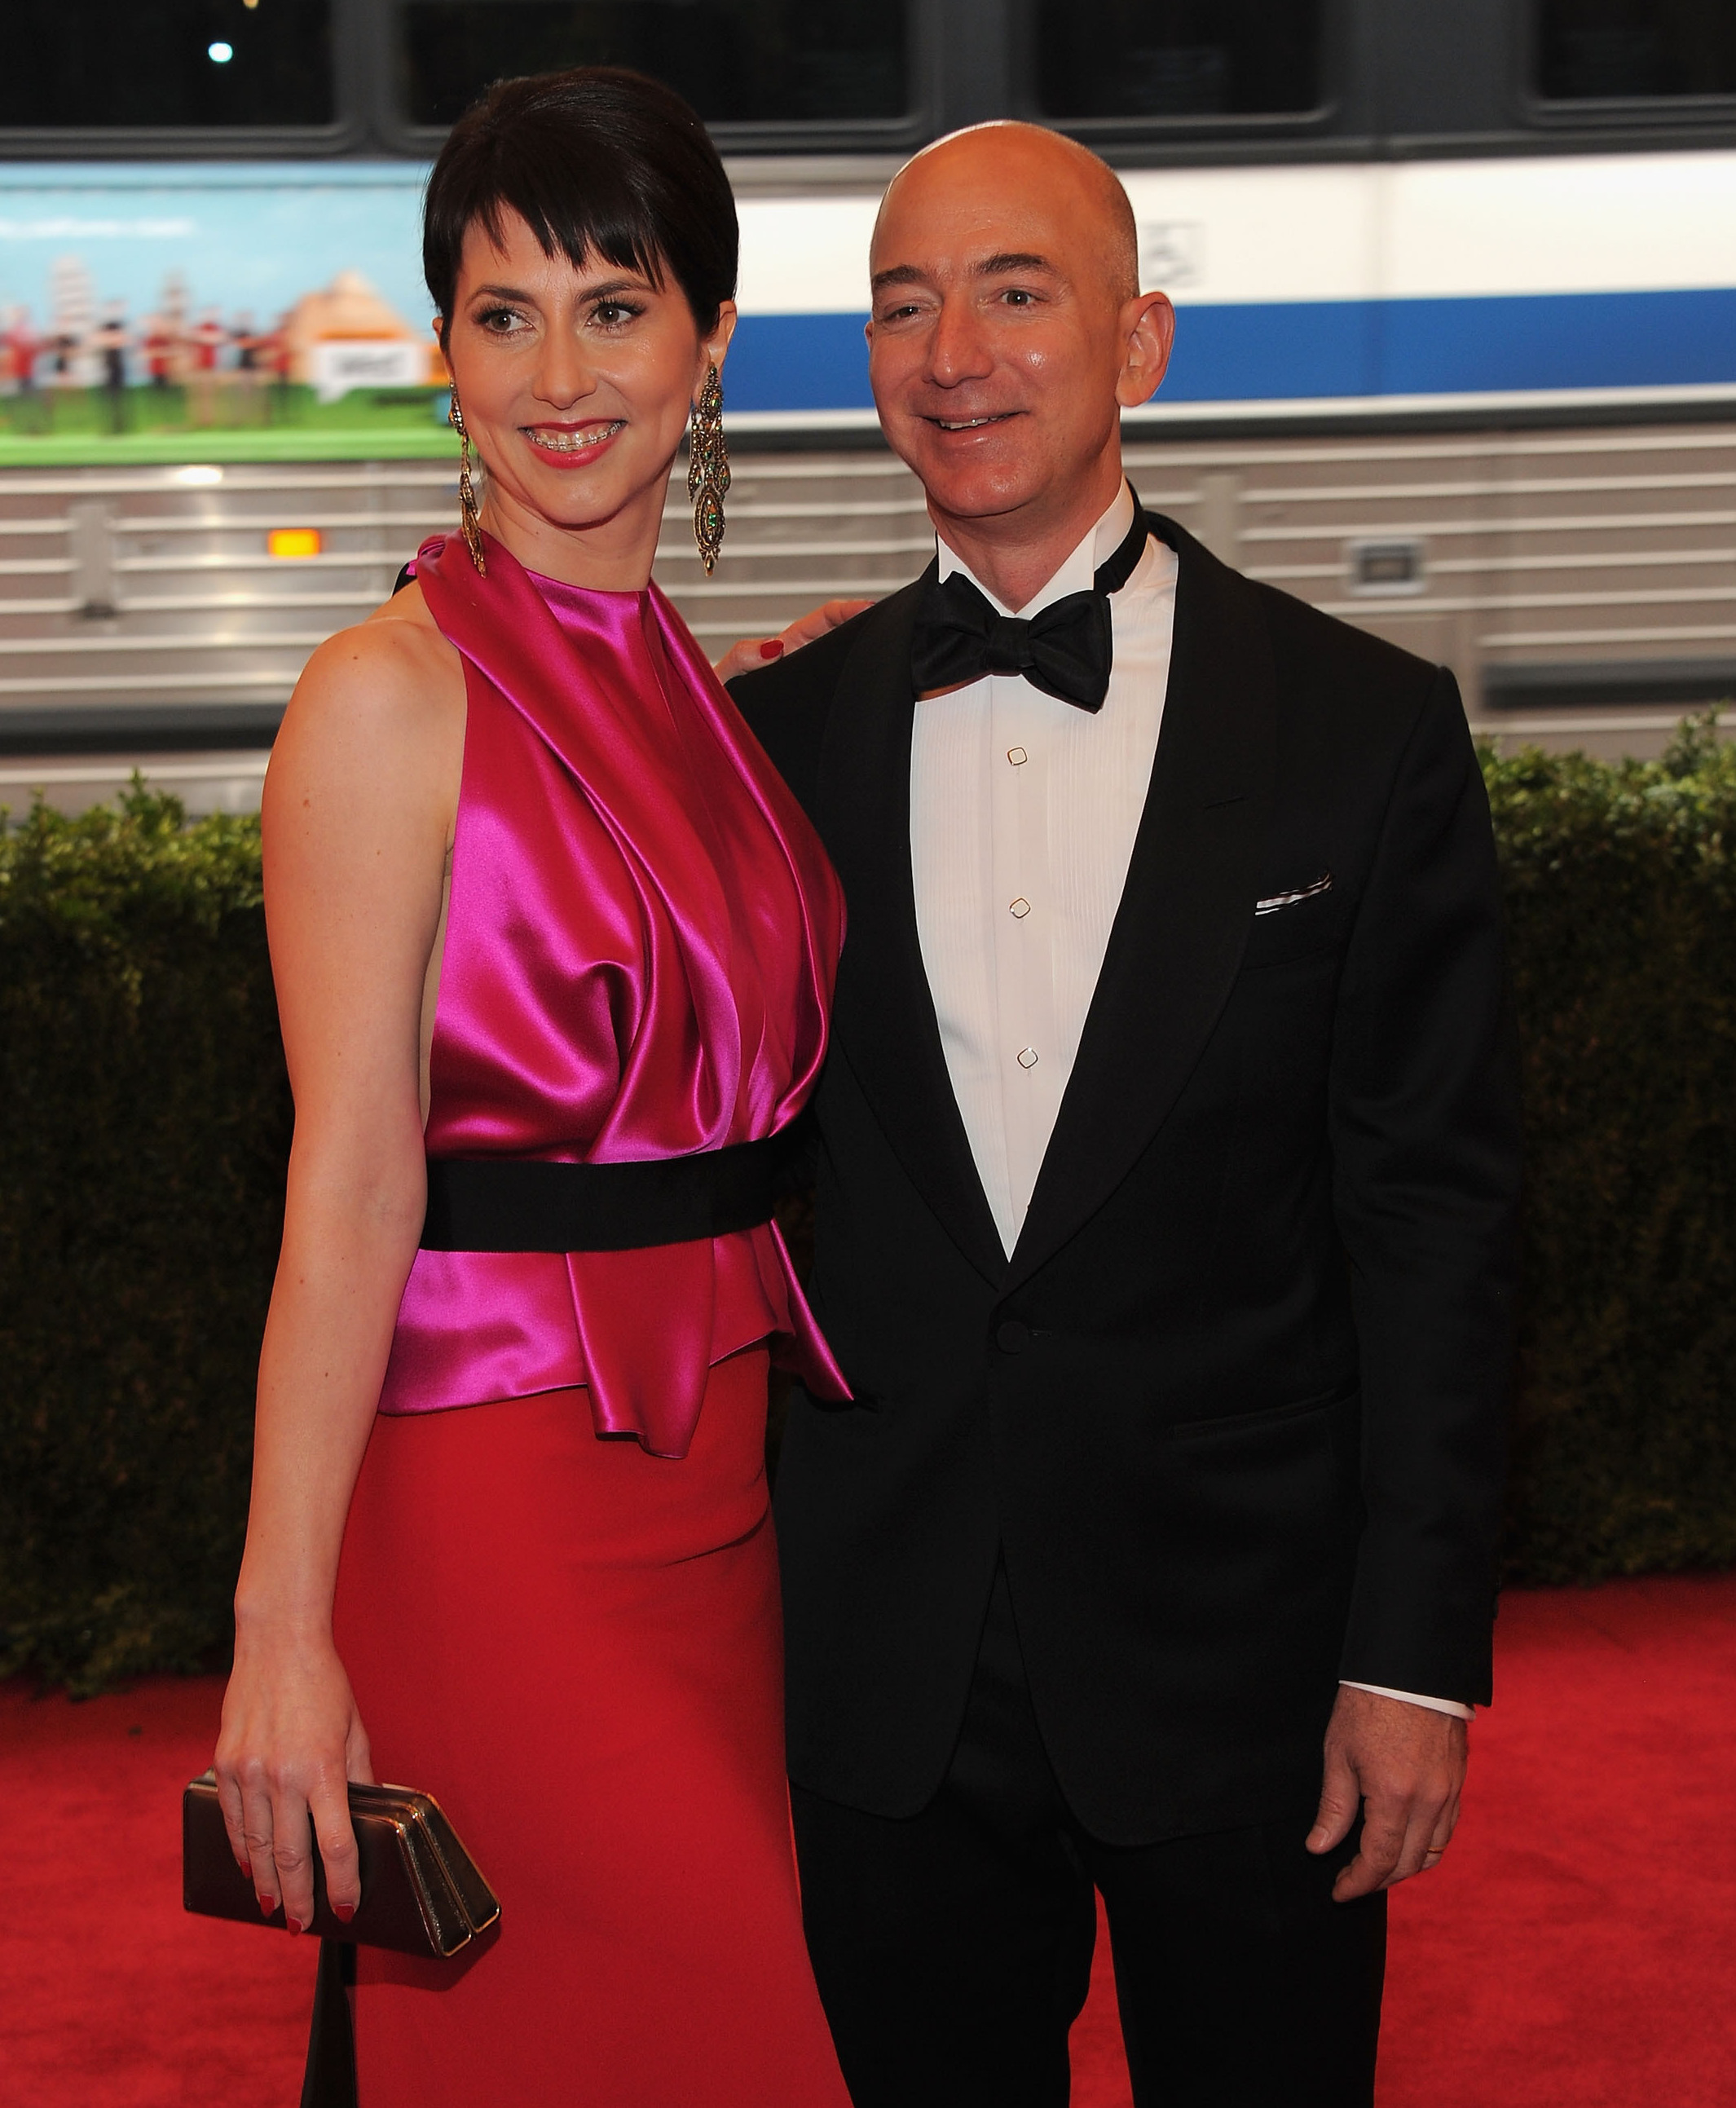 Amazon S Bezos Enters Gay Marriage Debate With 2 5m Worth Of